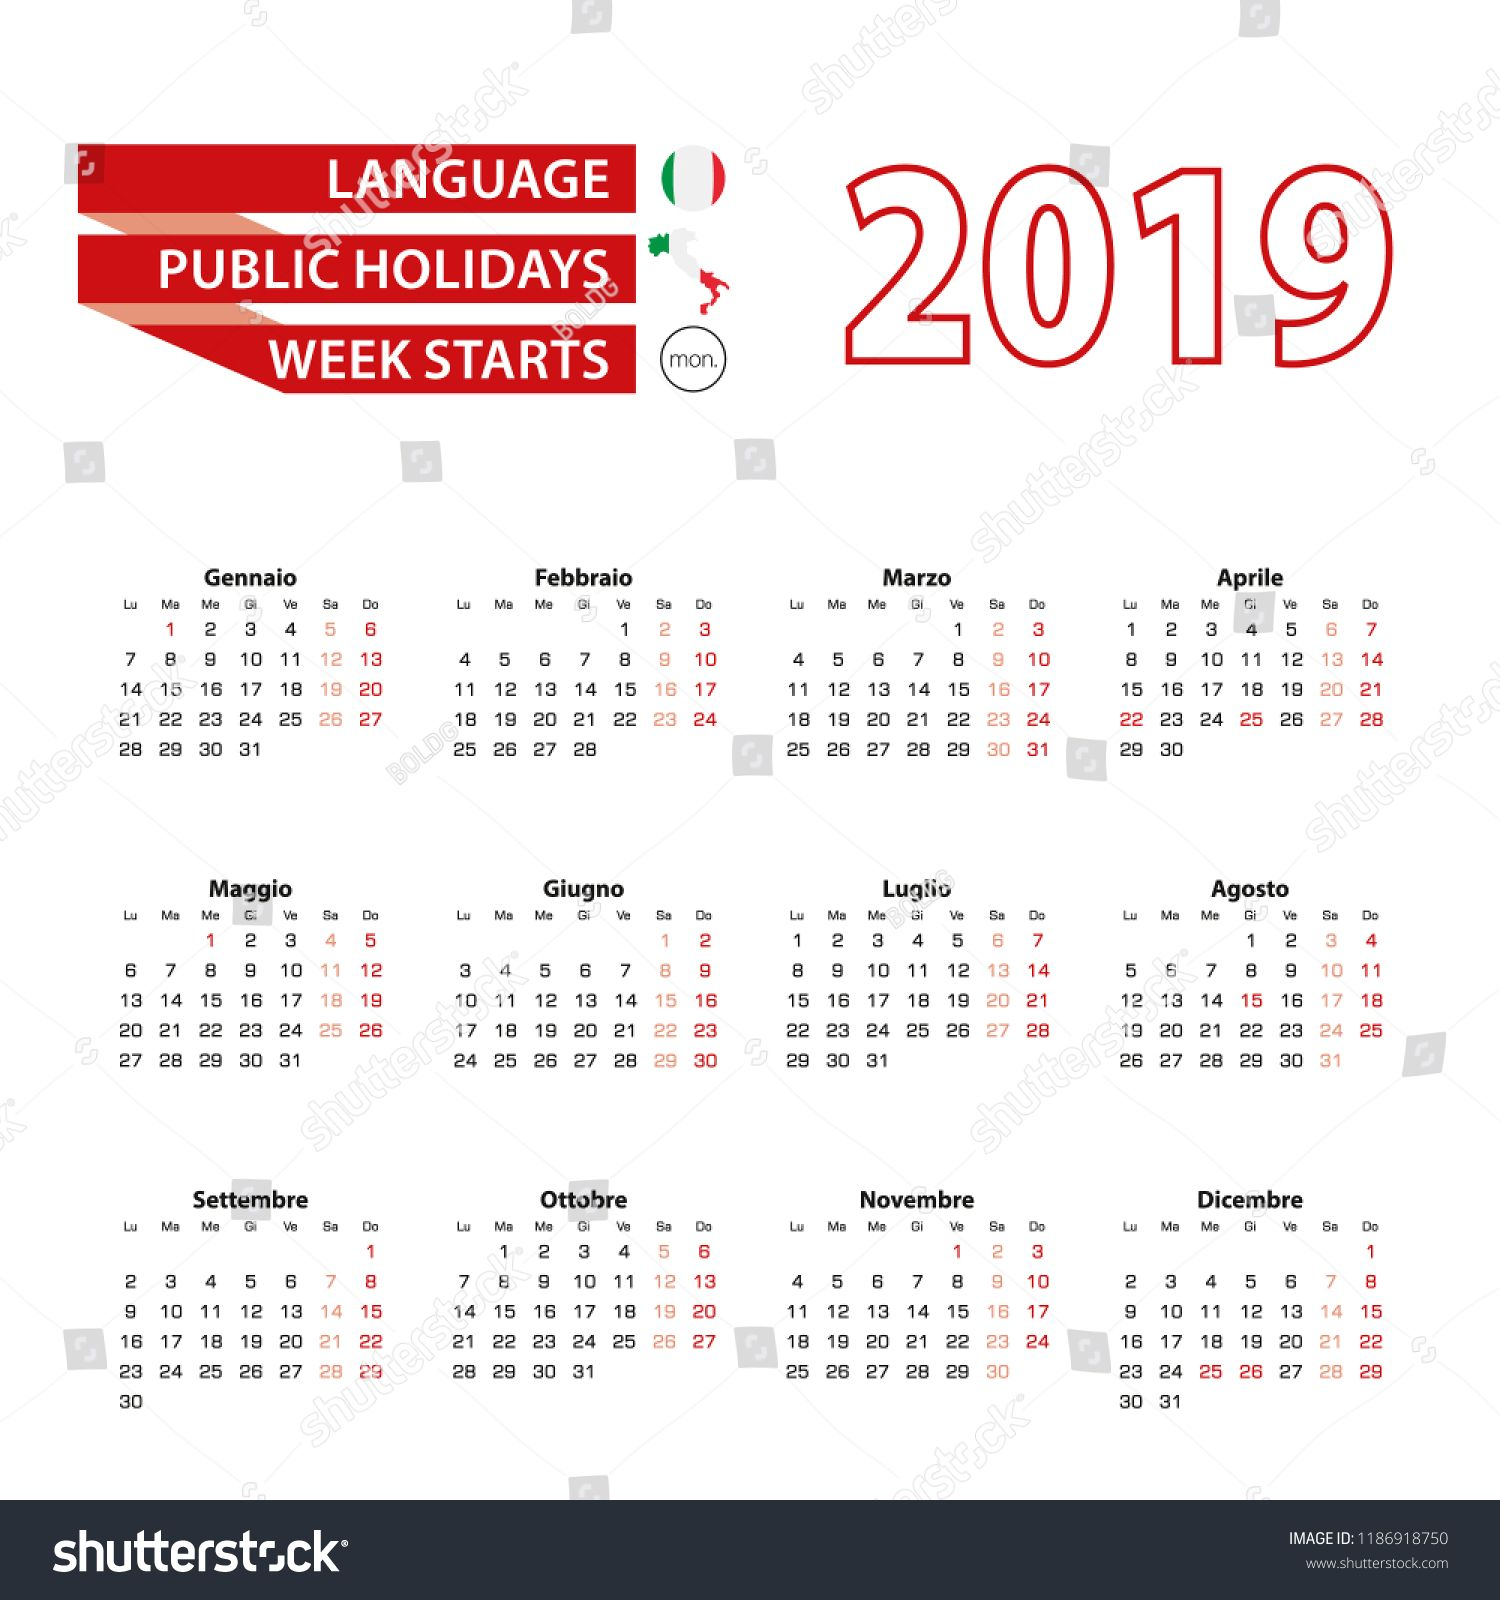 Calendar 2019 In Italian Language With Public Holidays The Country Of Italy In Year 2019 Week S Calendar Printables Calendar Template Templates Printable Free